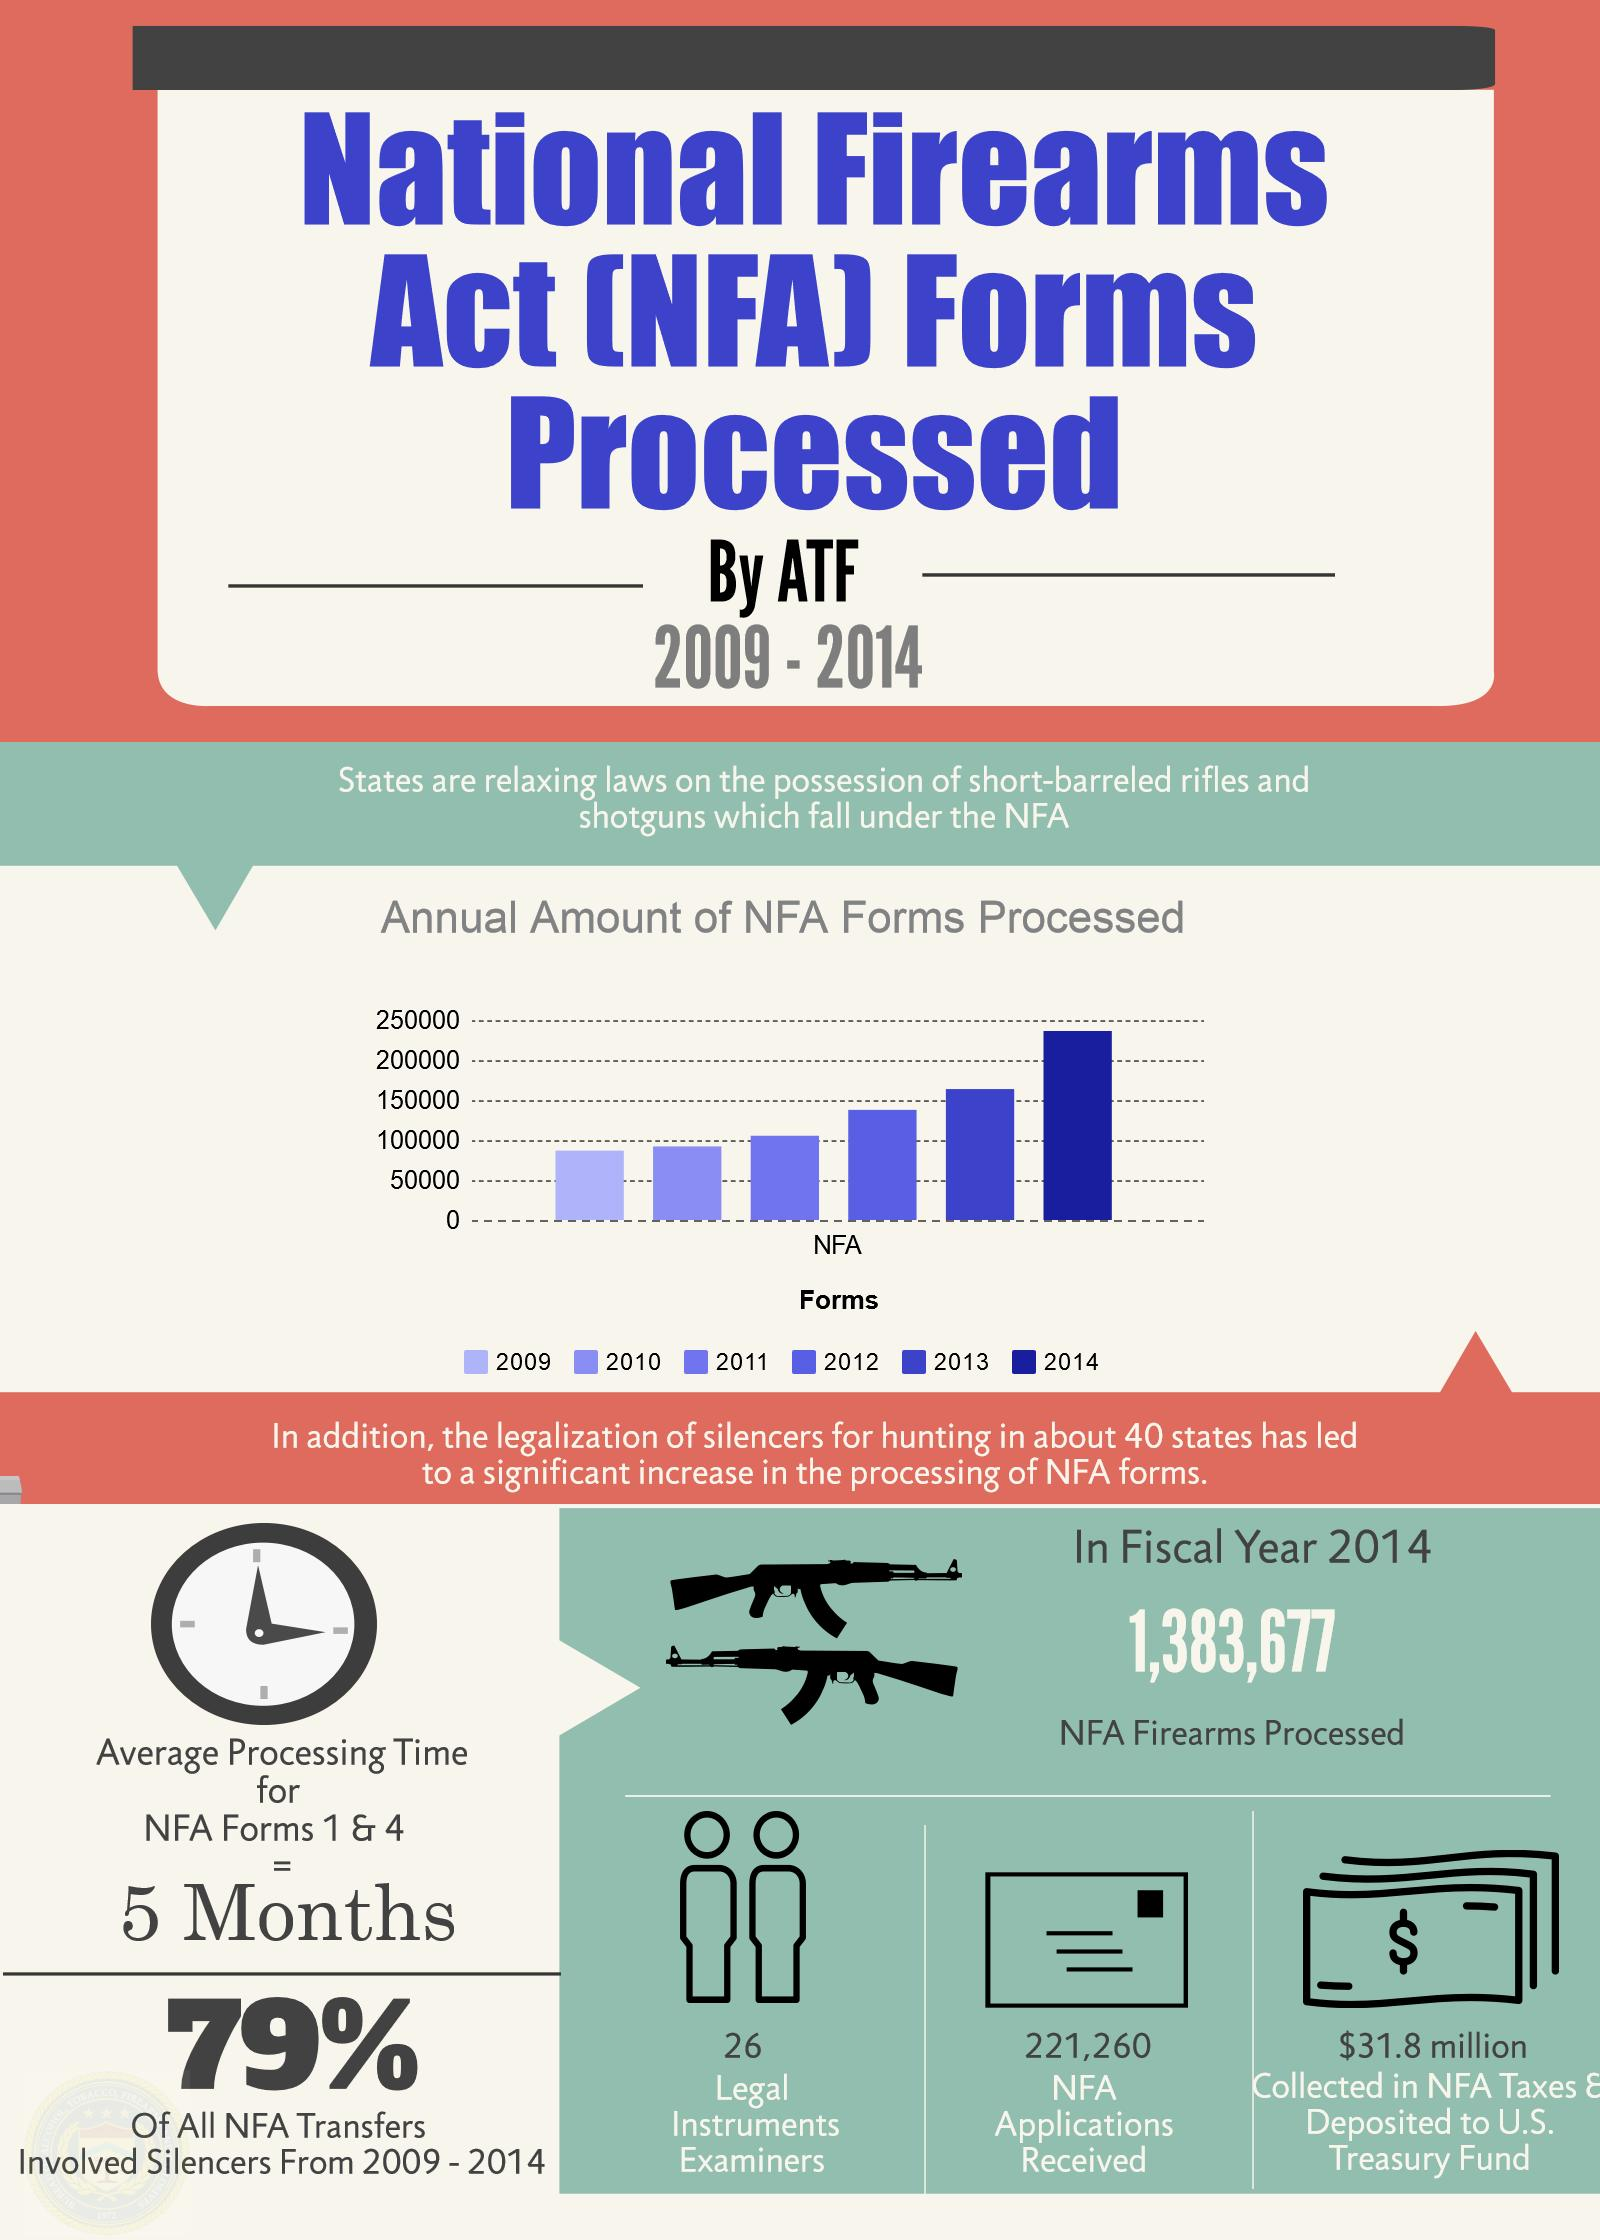 National Firearms Act (NFA) Forms Processed by ATF 2009-2014